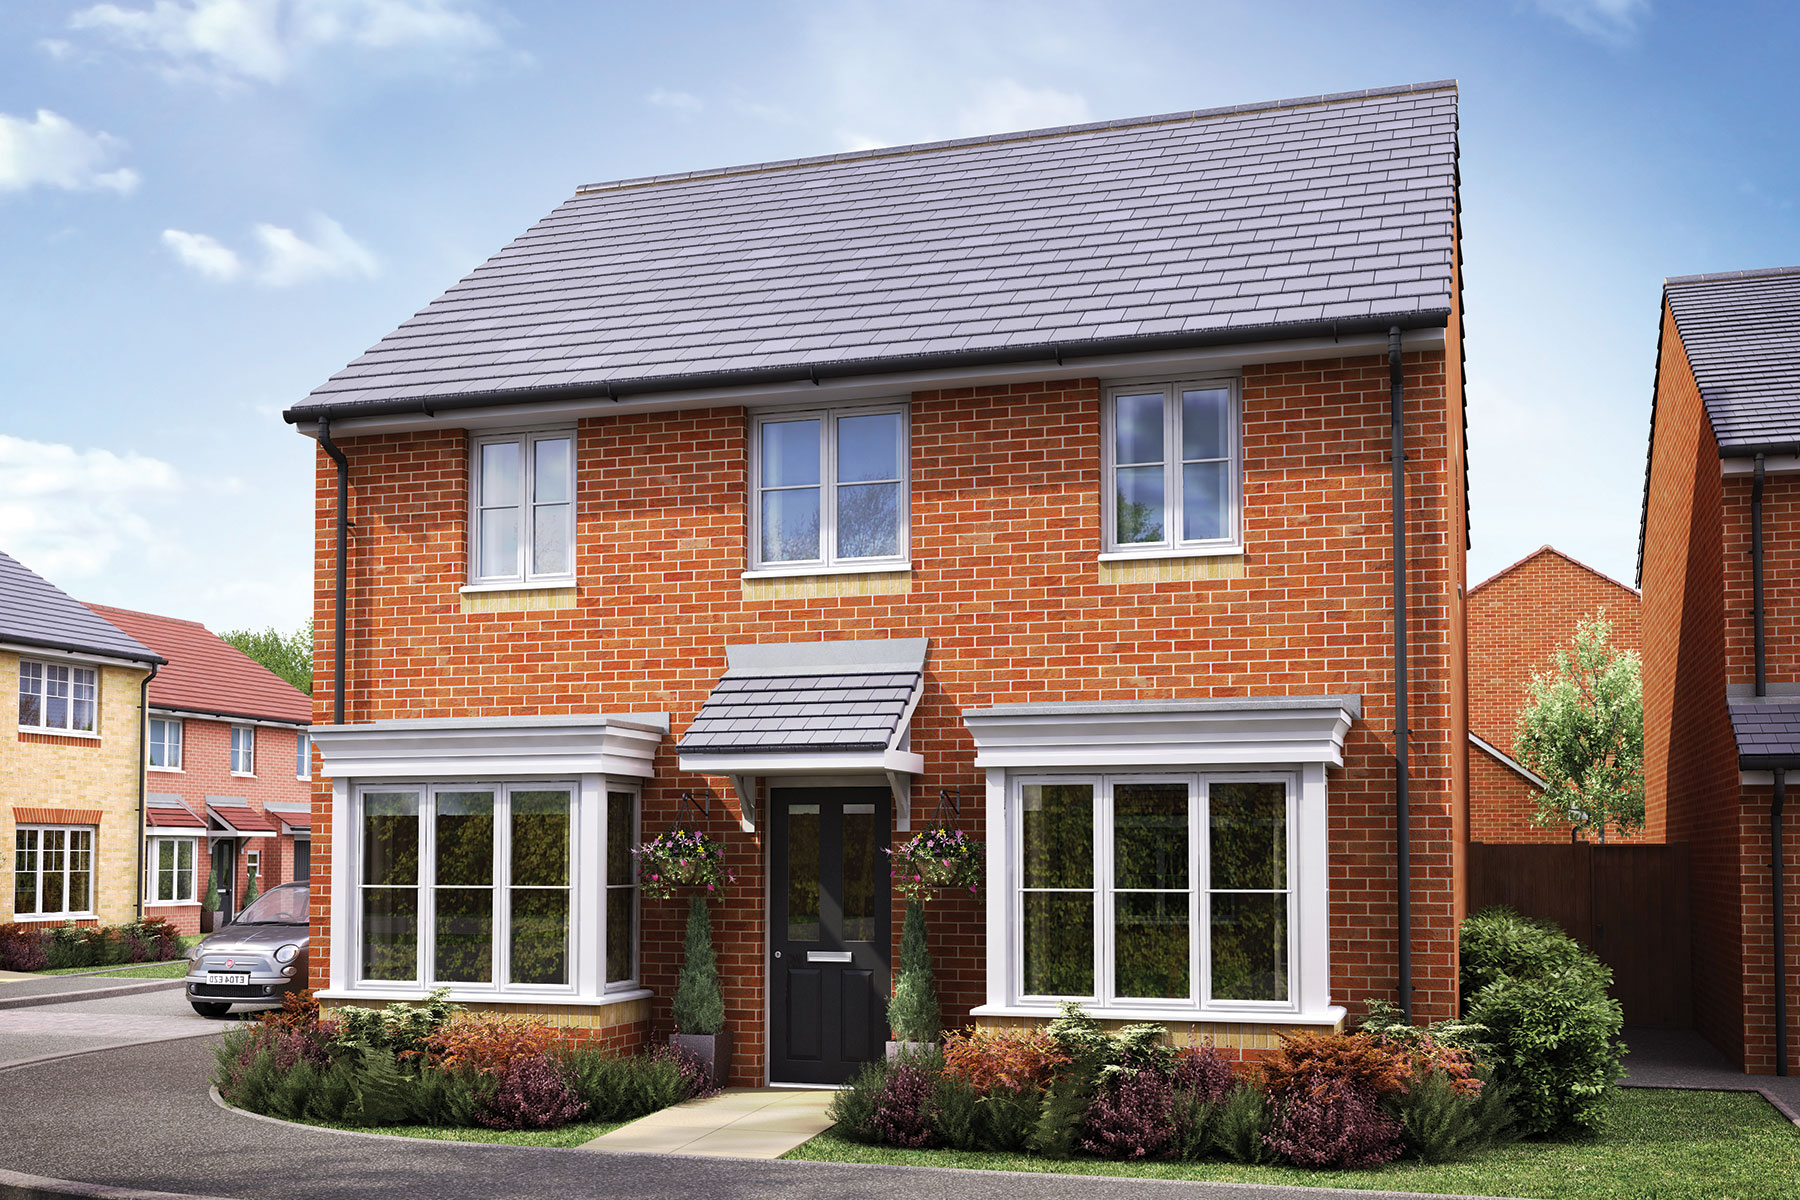 Taylor Wimpey - Exterior - The Hadleigh - 4 bedroom new home